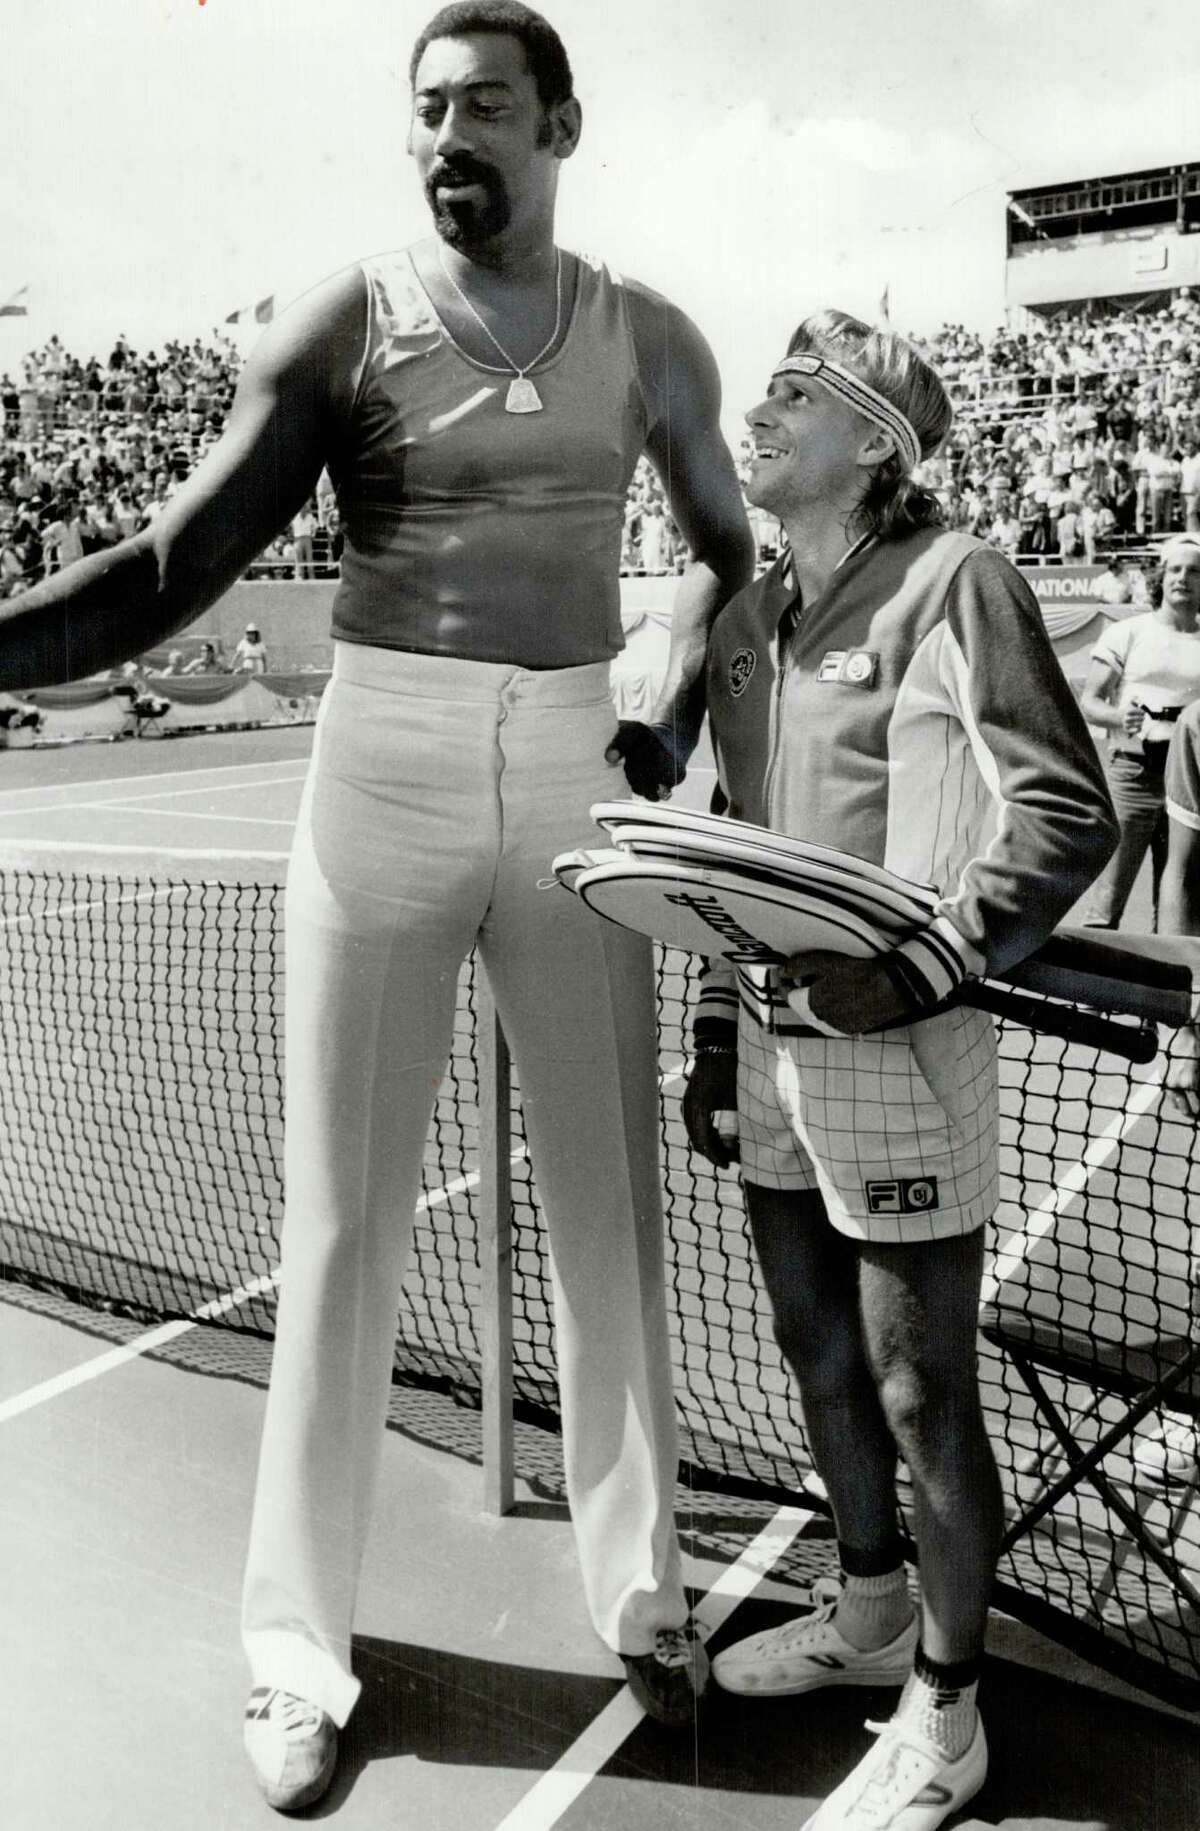 CANADA - AUGUST 19: Looking up: Former basketball star Wilt Chamberlain has an admirer down there in Bjorn Borg. The Stilt was in town to watch the tennis yesterday at York.